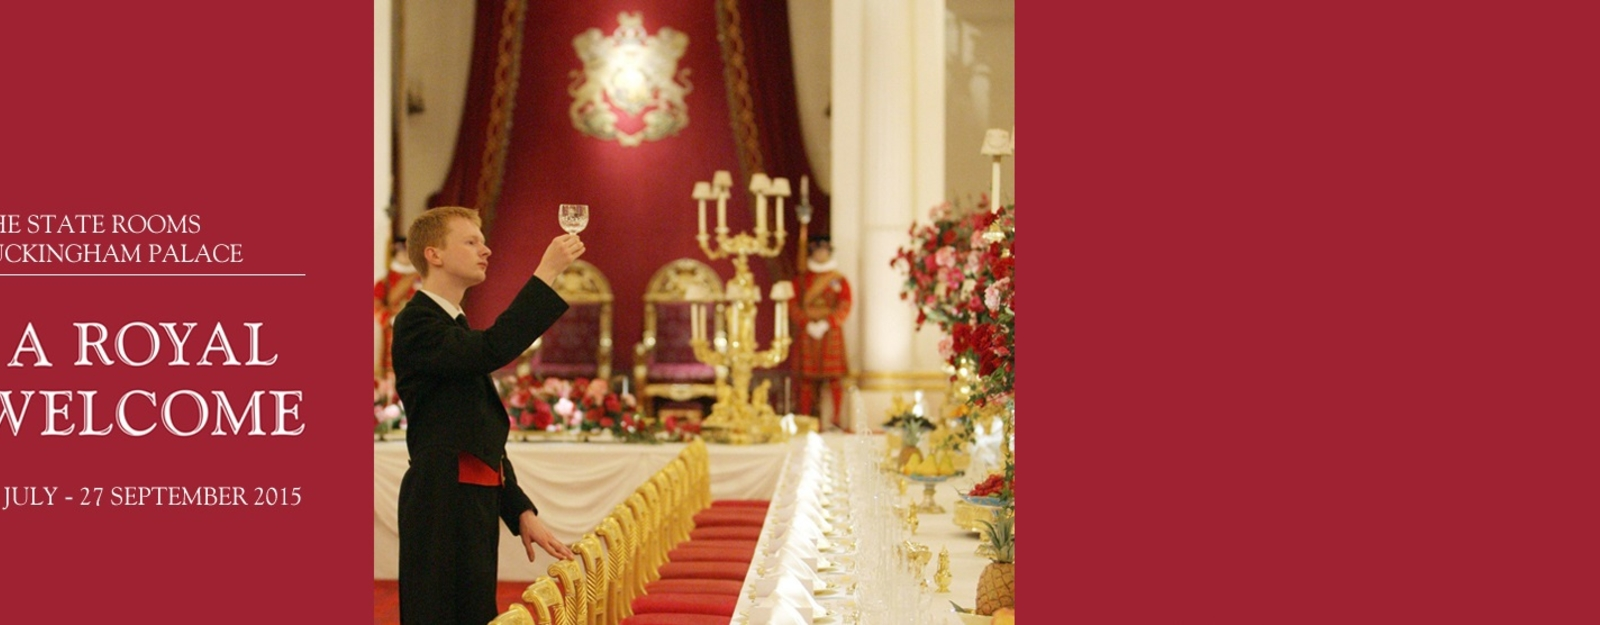 Footman checking preparations for a State Banquet at Buckingham Palace